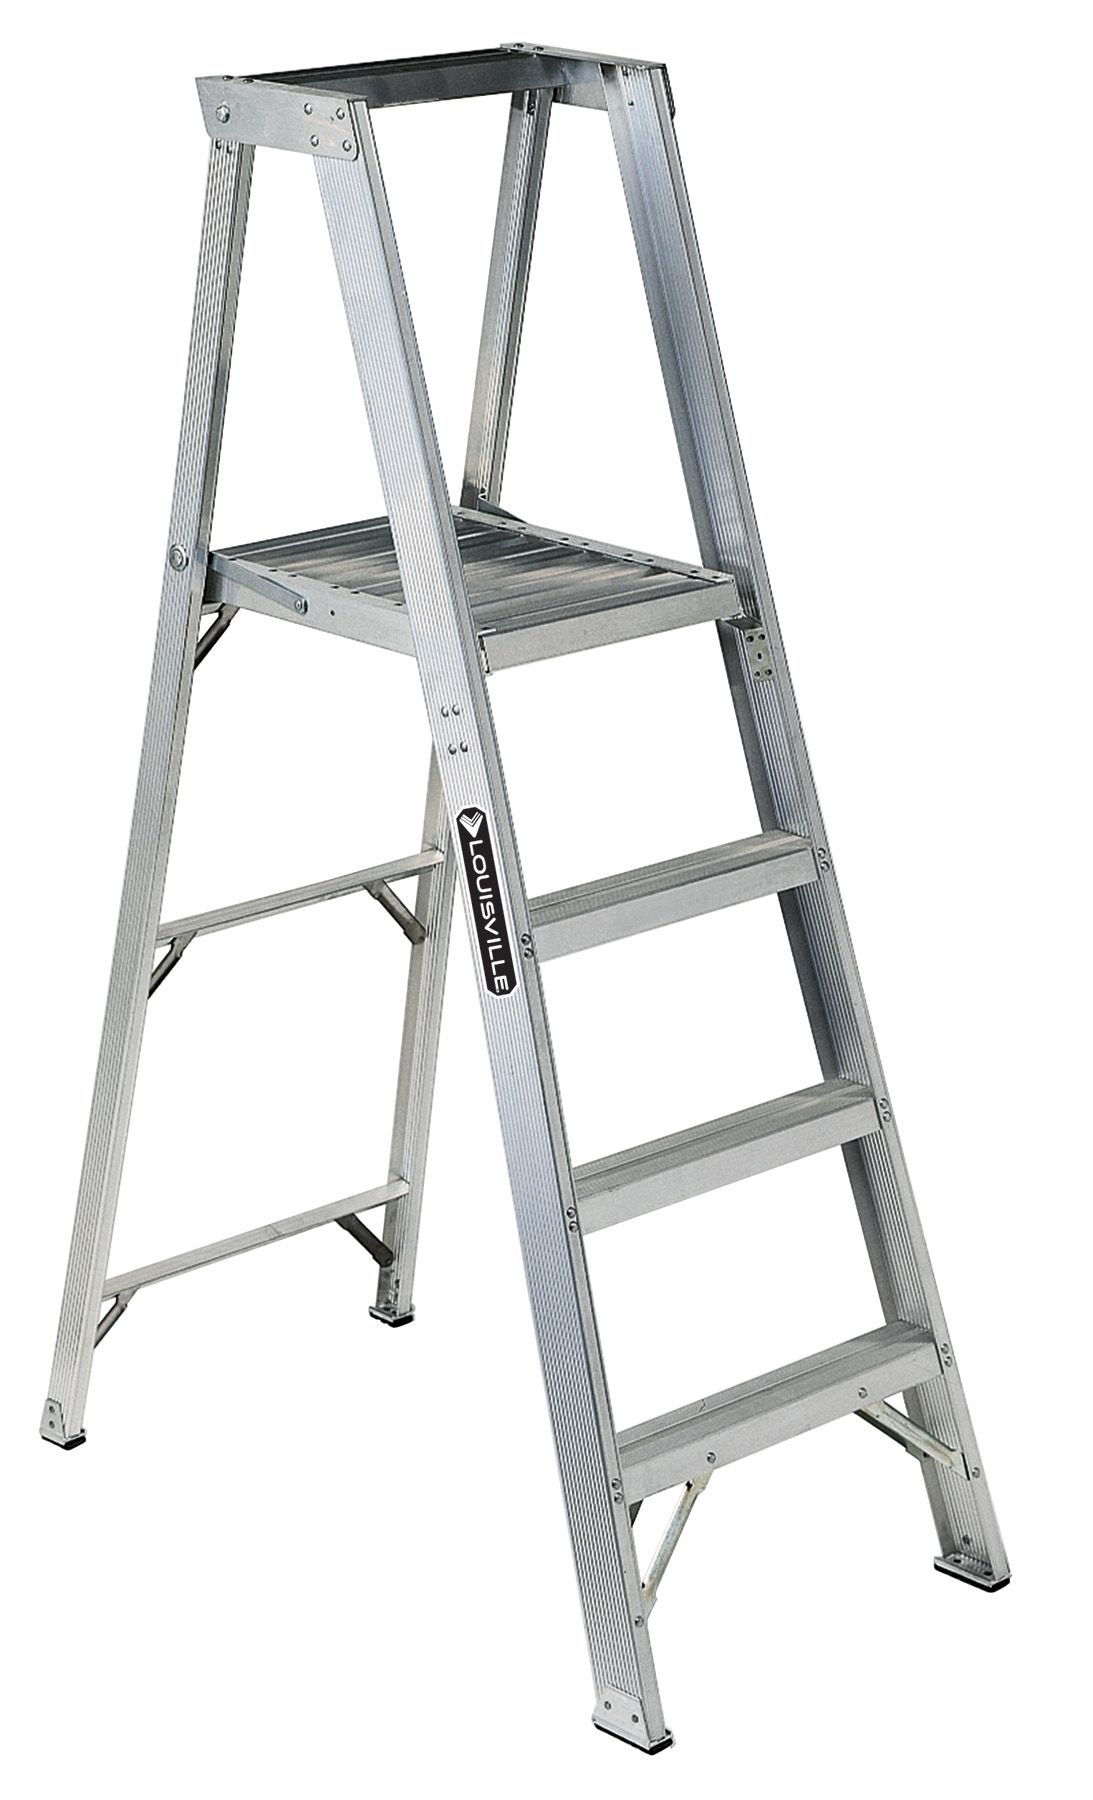 These Lightweight Aluminum Industrial Platform Ladders Have A 375 Lb Duty Rating And Are Designed With Extra Heavy Duty S Sillas De Madera Escaleras De Madera